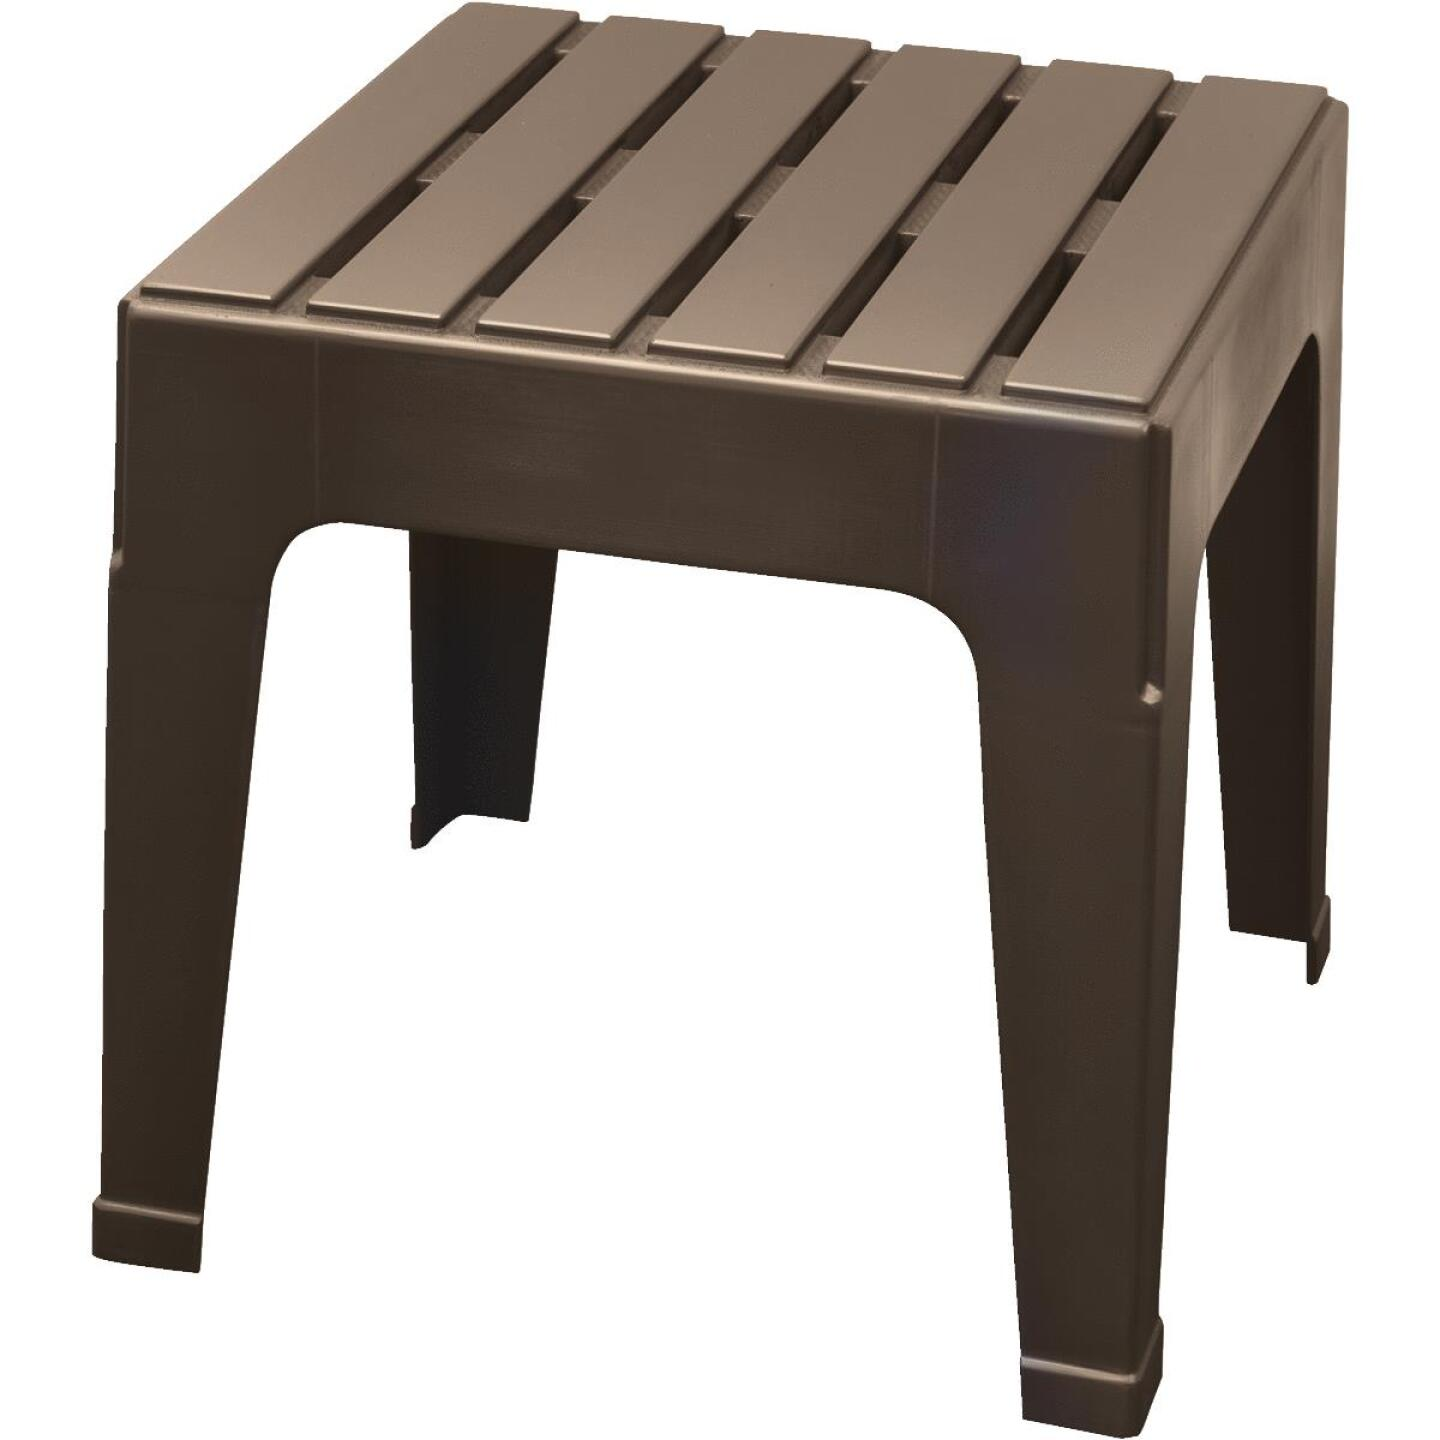 Adams Big Easy Earth Brown 18.9 In. Square Resin Stackable Side Table Image 1